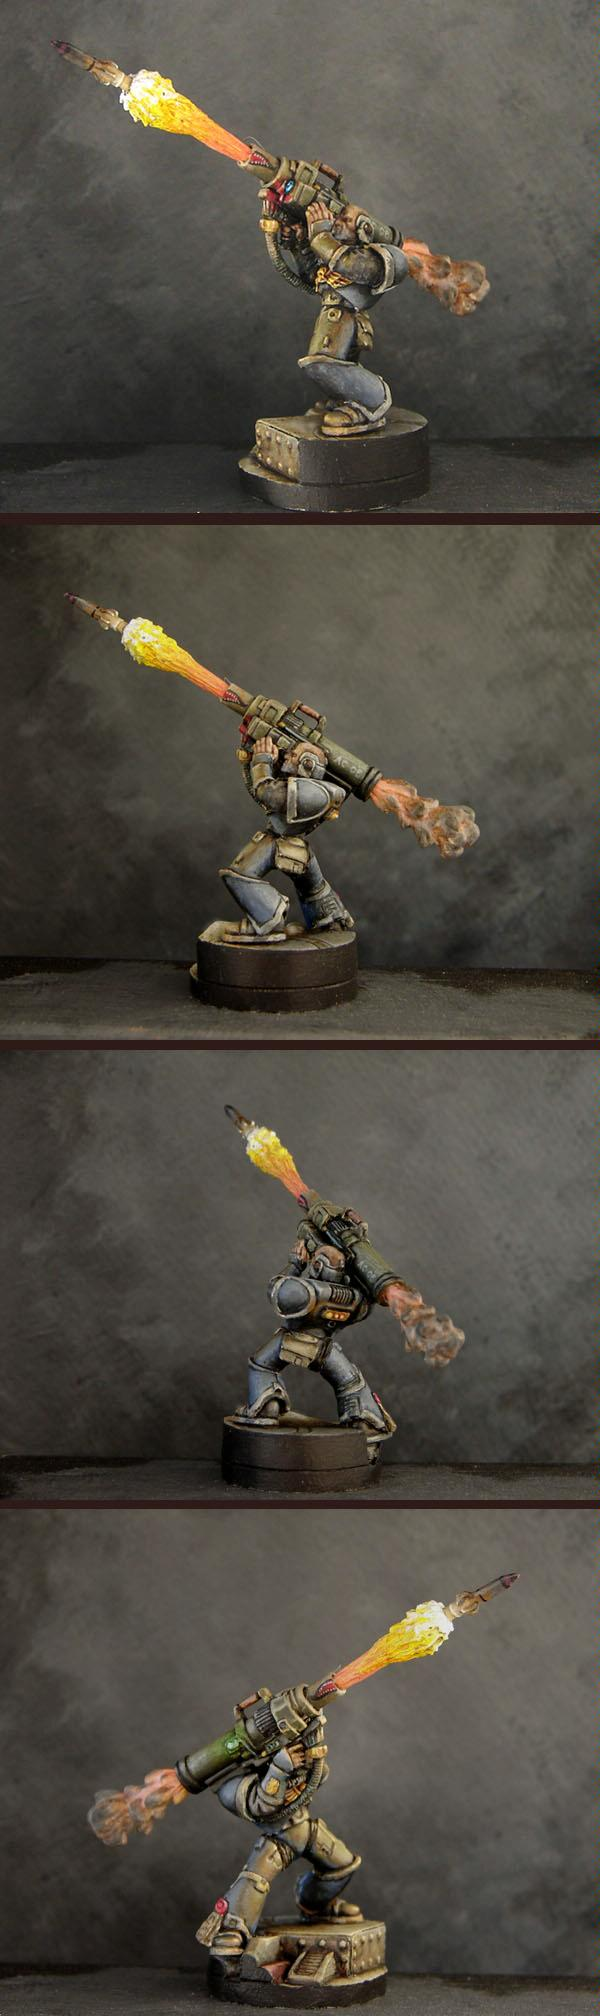 Armorcast, Awesome, Conversion, Custom Rocket Launcher, Object Source Lighting, Space Marines